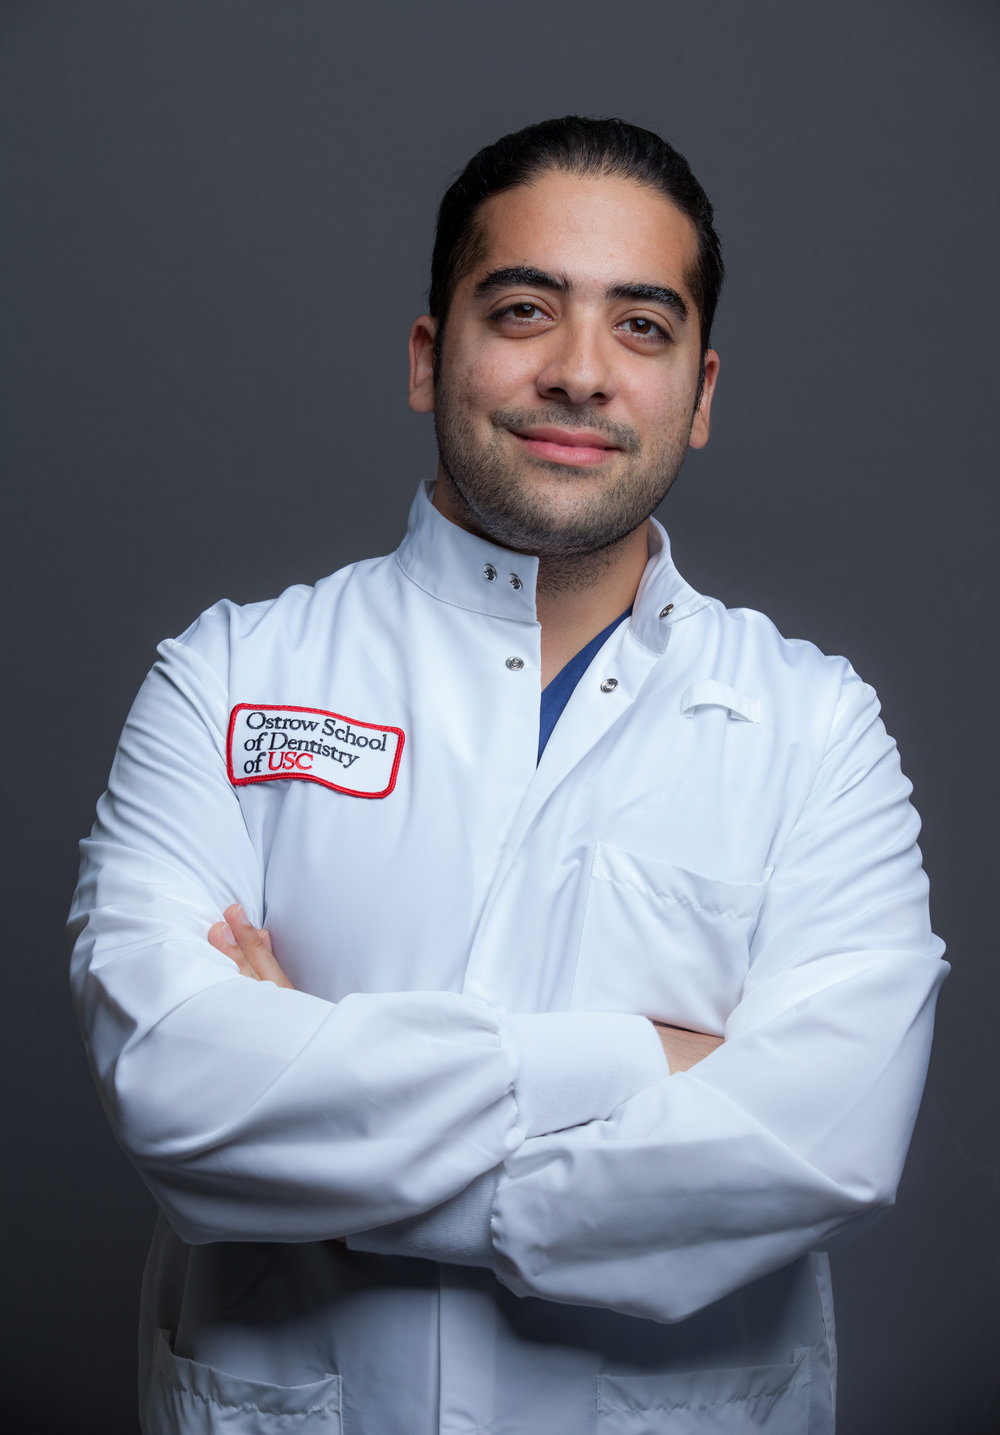 Mehrdad Ra. DDS Class of 2019 at the Herman Ostrow School of Dentistry of USC